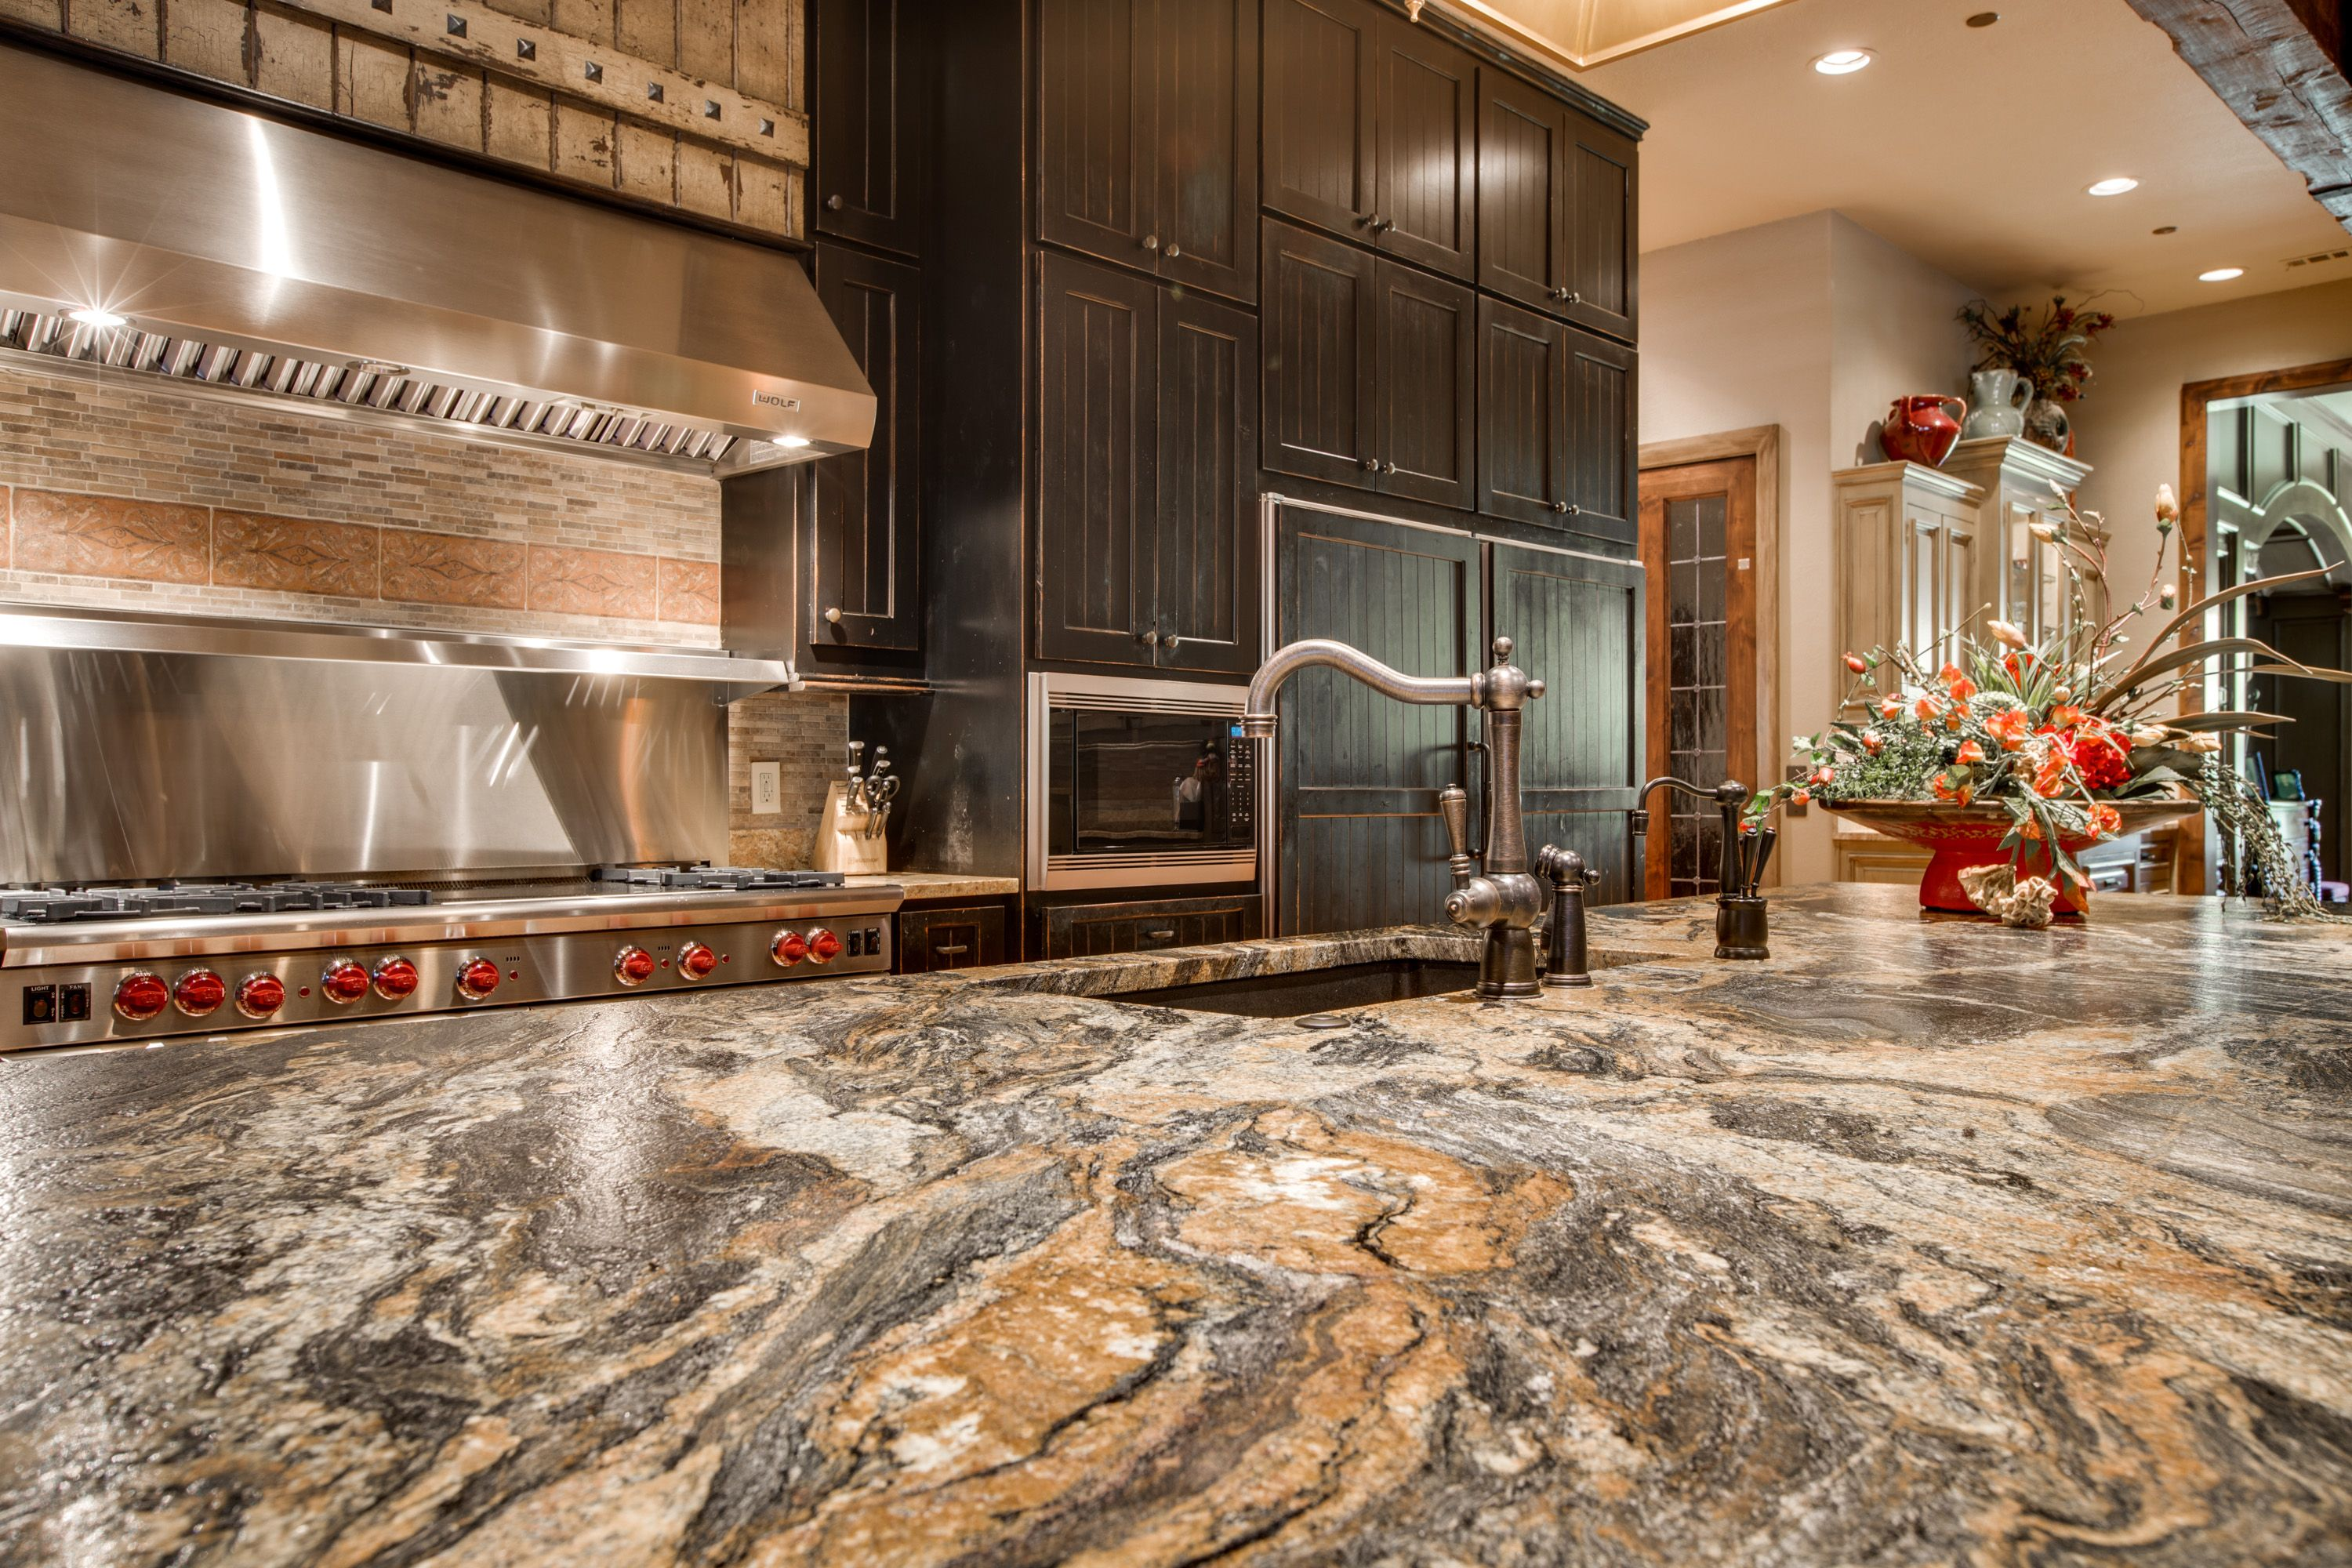 Volcano Granite In A Leather Finish Makes This Rustic Chic Kitchen